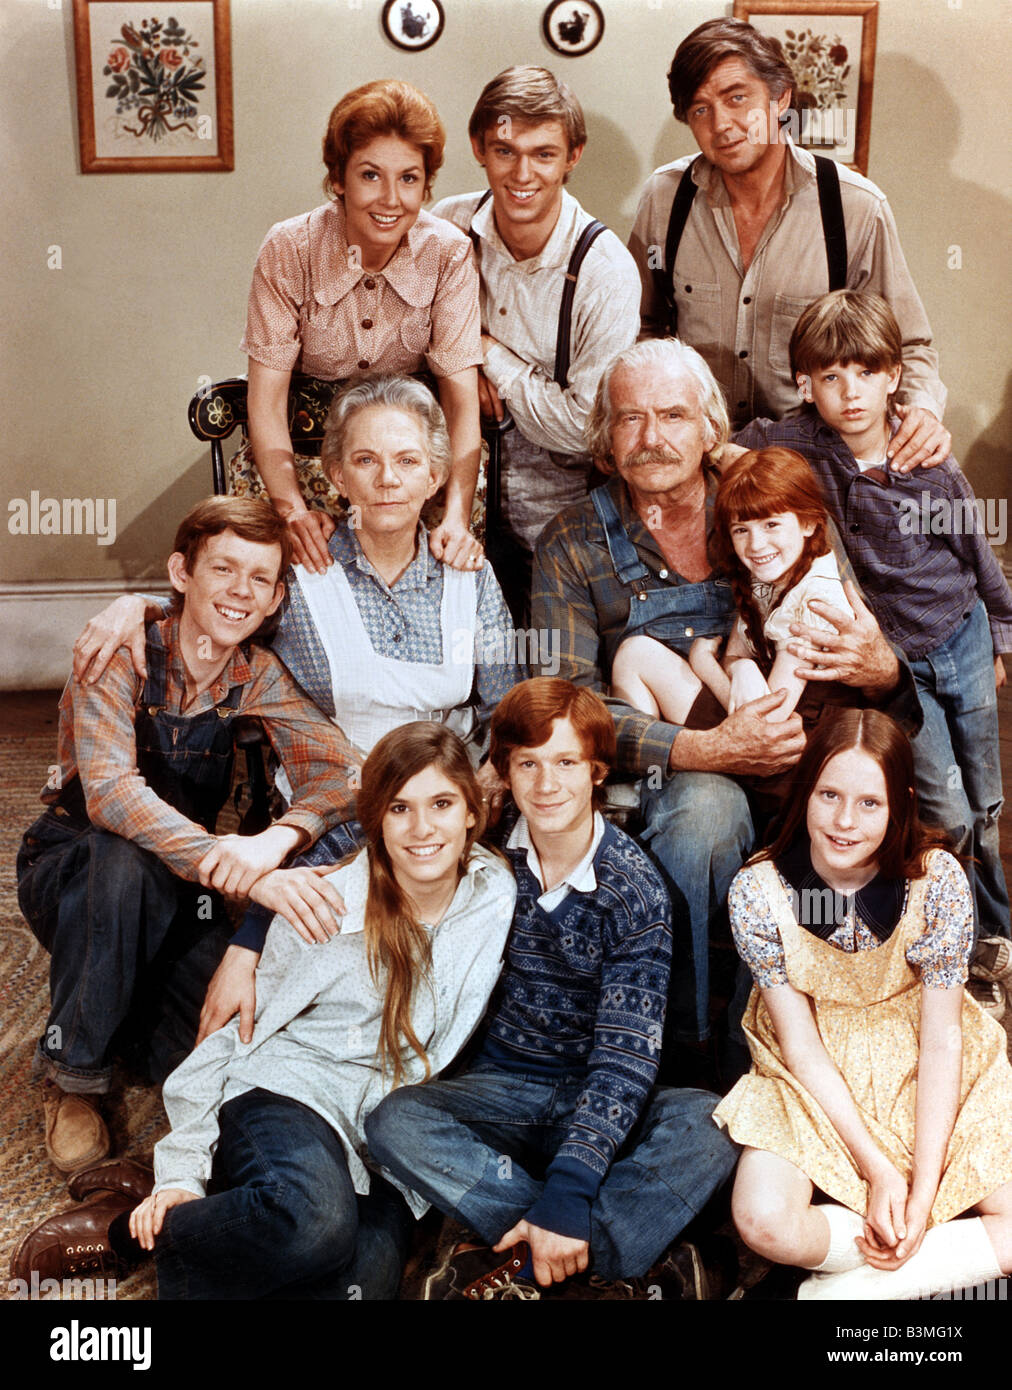 THE WALTONS  US Lorimar TV series 1972 to 1981 with top row from left: Michael Learned (sic) , Richard Thomas  and - Stock Image